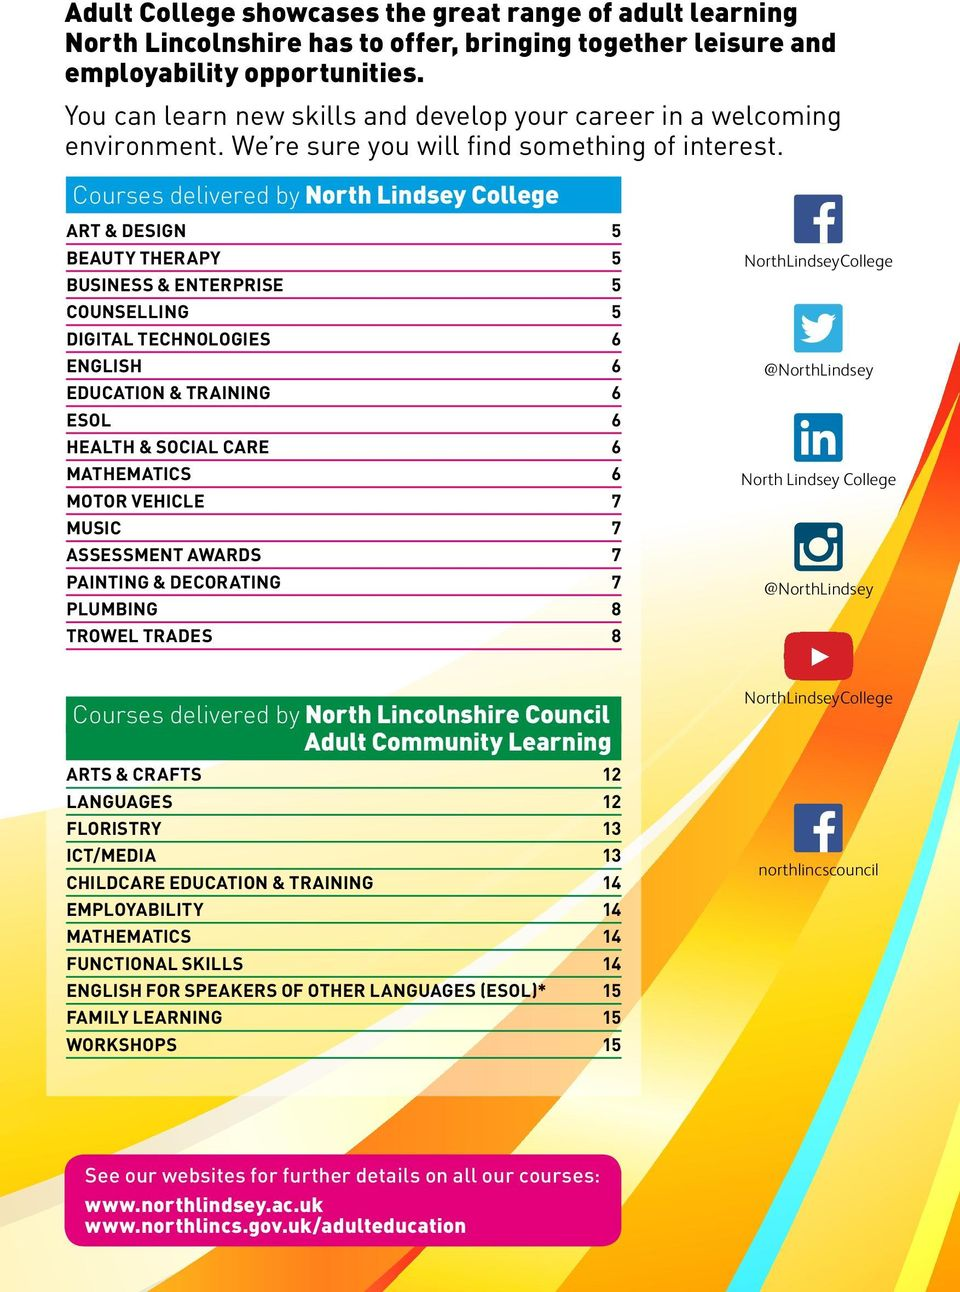 Courses delivered by North Lindsey College ART & DESIGN 5 BEAUTY THERAPY 5 BUSINESS & ENTERPRISE 5 COUNSELLING 5 DIGITAL TECHNOLOGIES 6 ENGLISH 6 EDUCATION & TRAINING 6 ESOL 6 HEALTH & SOCIAL CARE 6